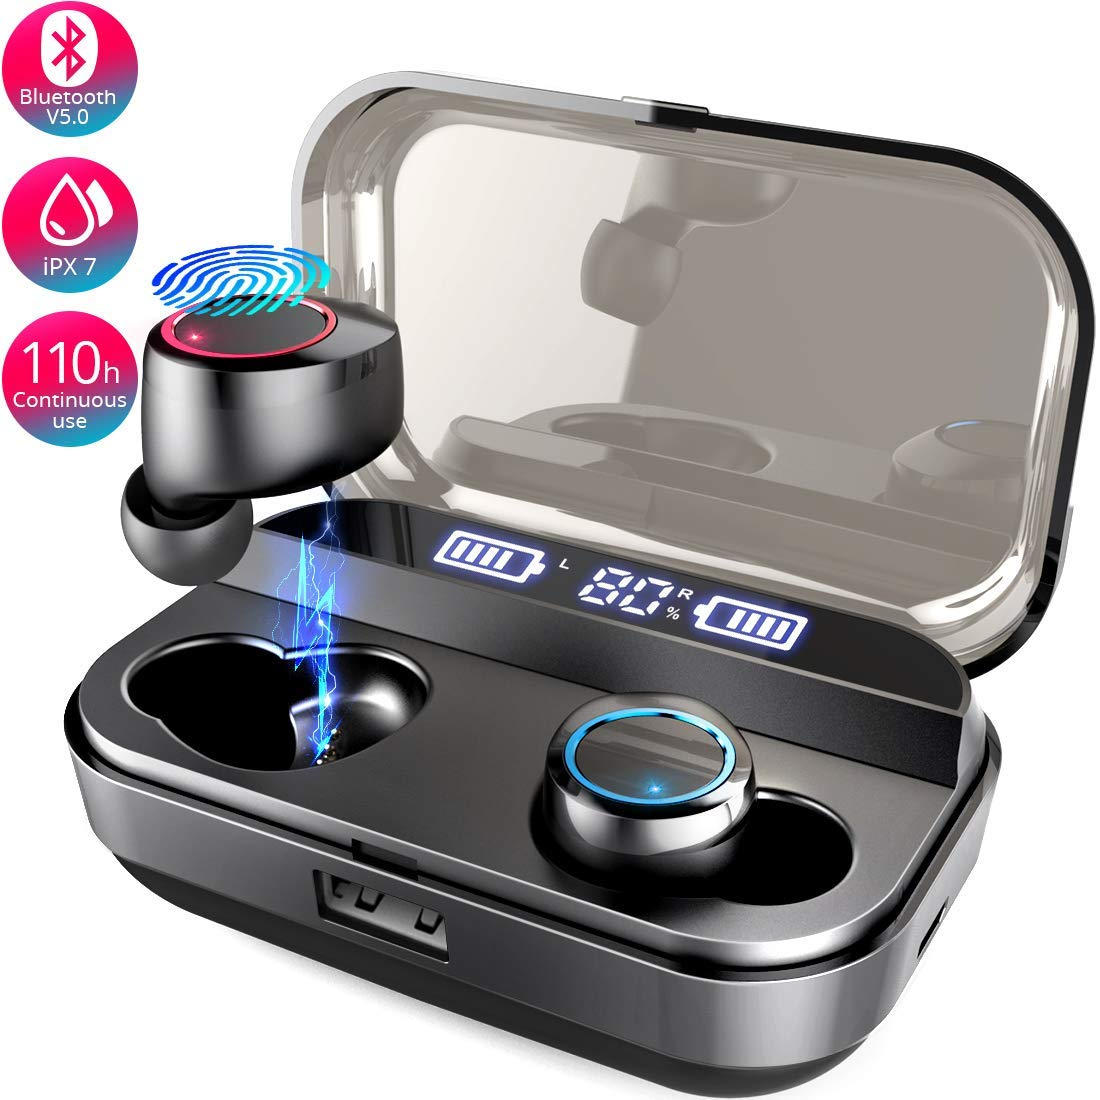 Bluetooth Earbuds True Wireless 5.0 Bluetooth Headphone TWS Stereo Binaural Calls 110-Hour Playtime IPX7 Waterproof Wireless Sport Earphones with 4000mAh Charging Case Black